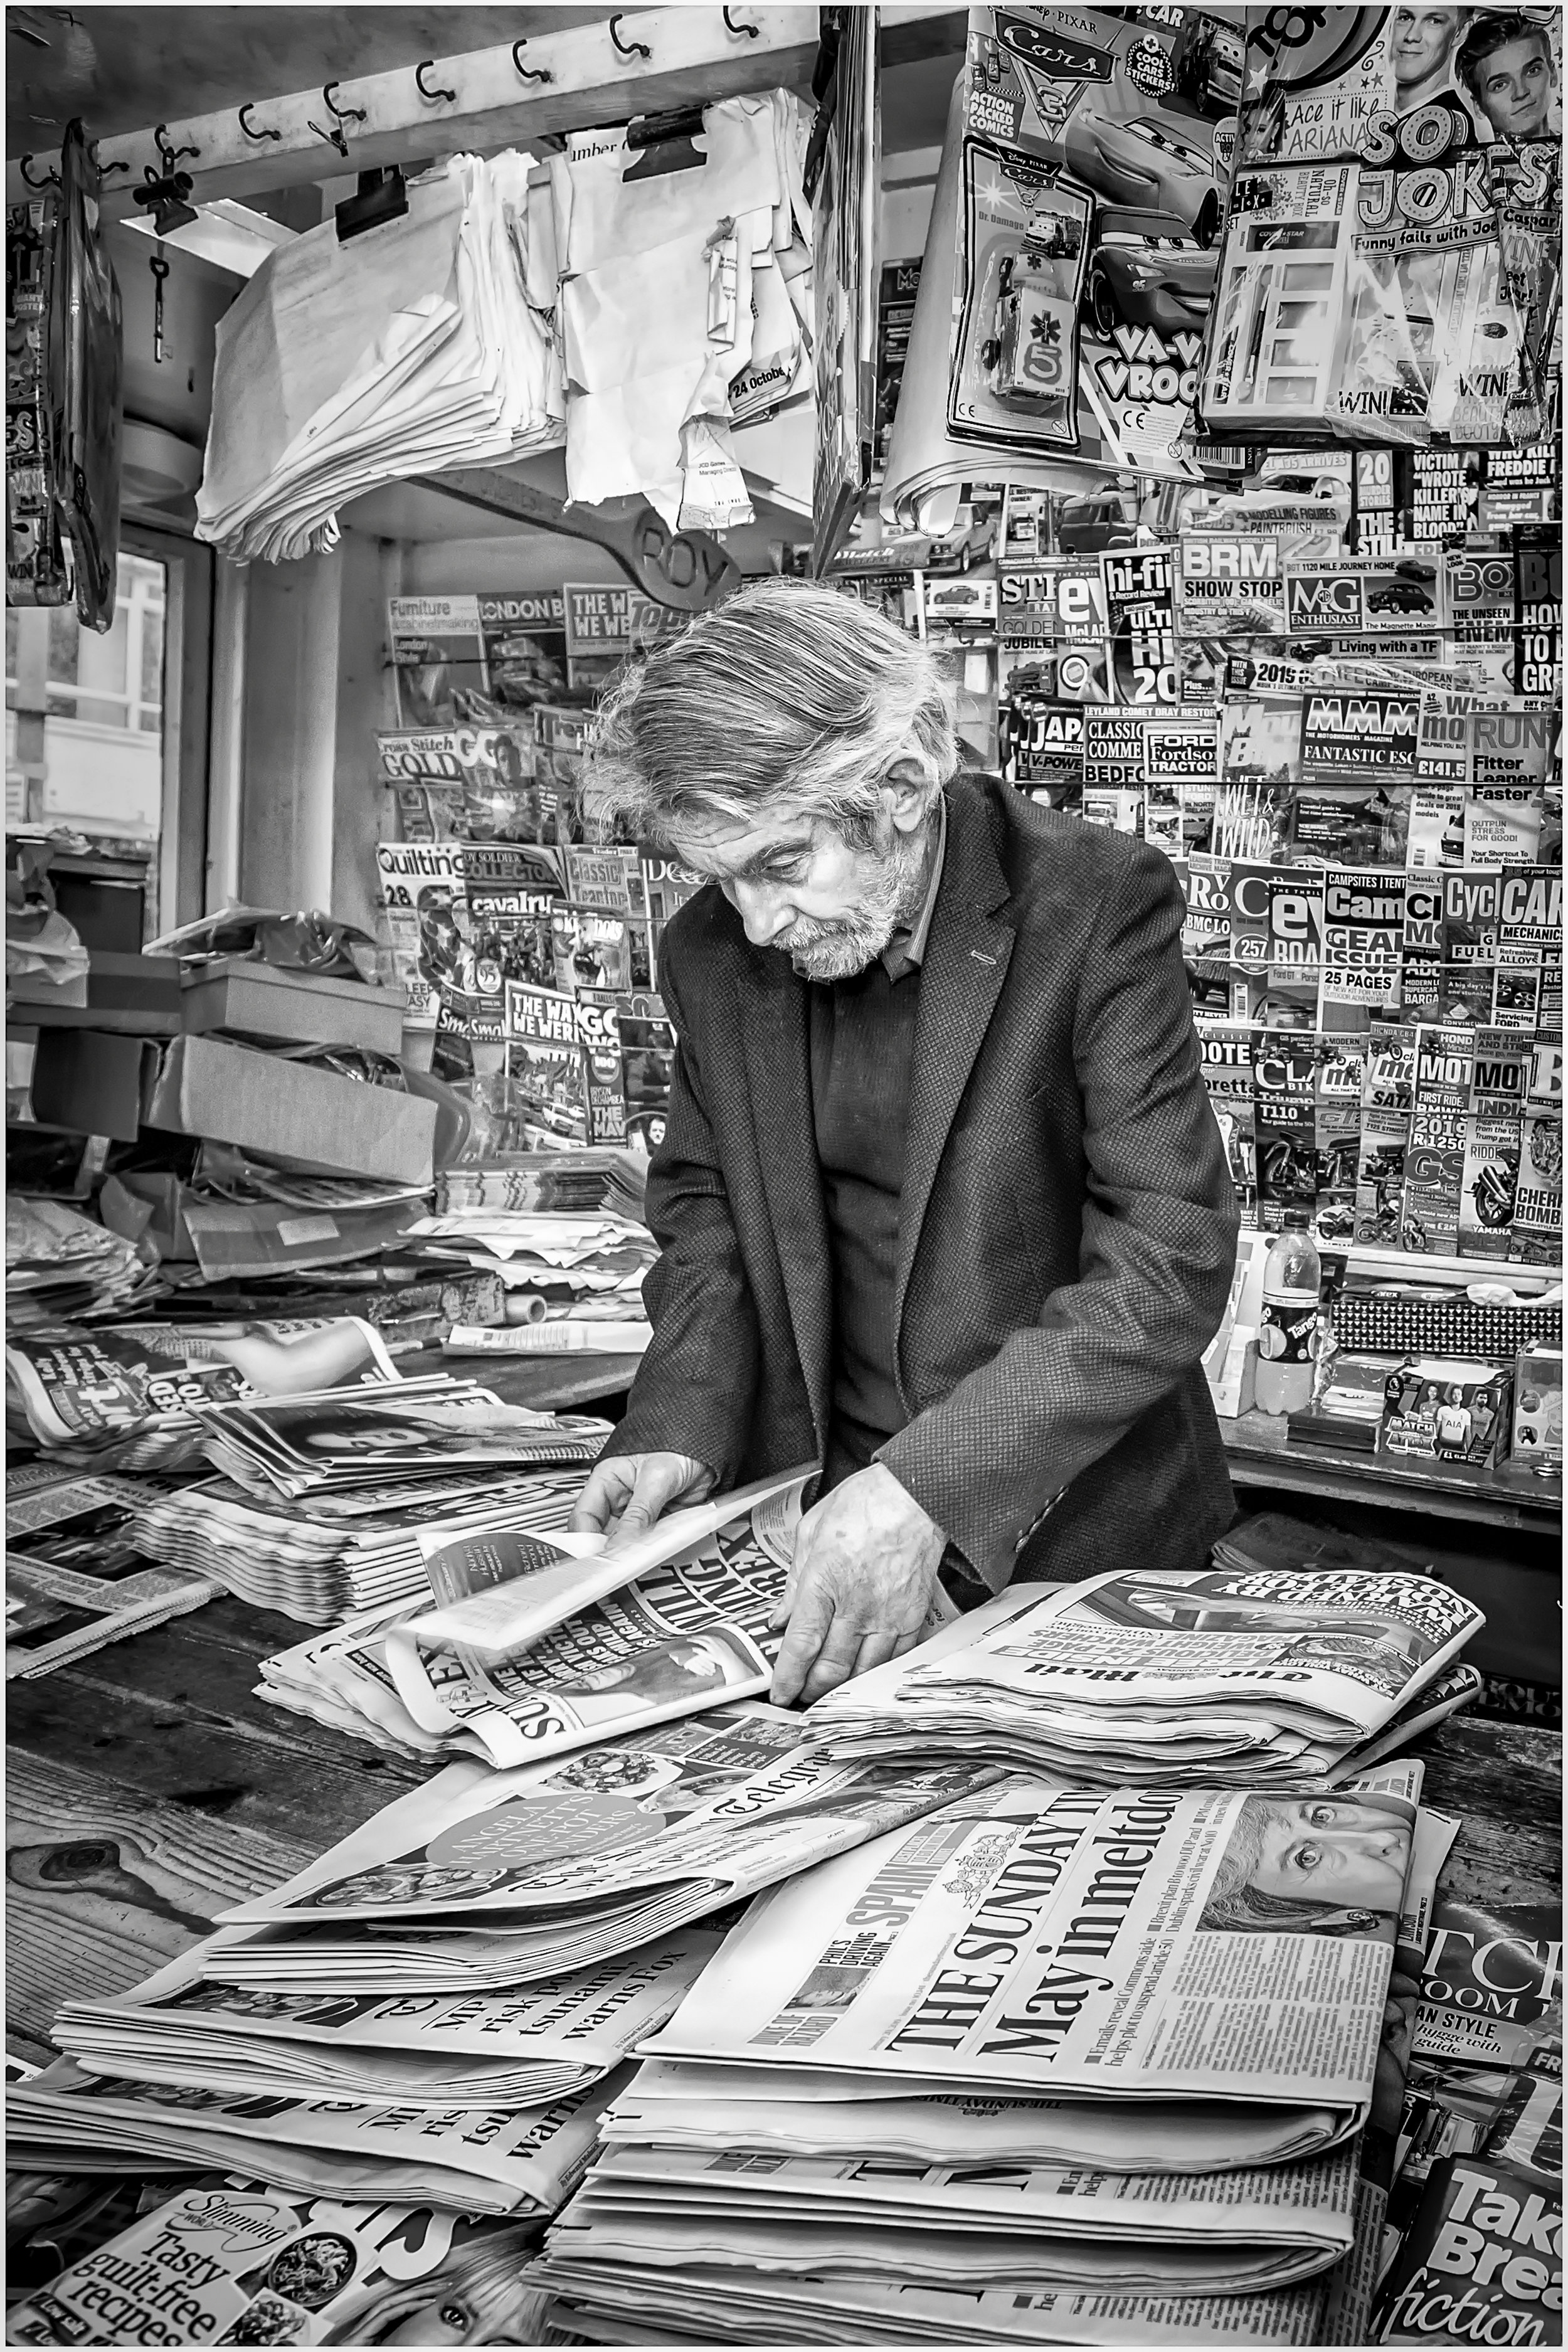 'Read all about it' …    Guernsey Eisteddfod 2019 Print Portrait Winner…    Wessex Dragons Exhibition 2019 - Mono People Acceptance…    Gradac International - 2019 - People Acceptance…    Georgia International 2019 - Portrait Acceptance…